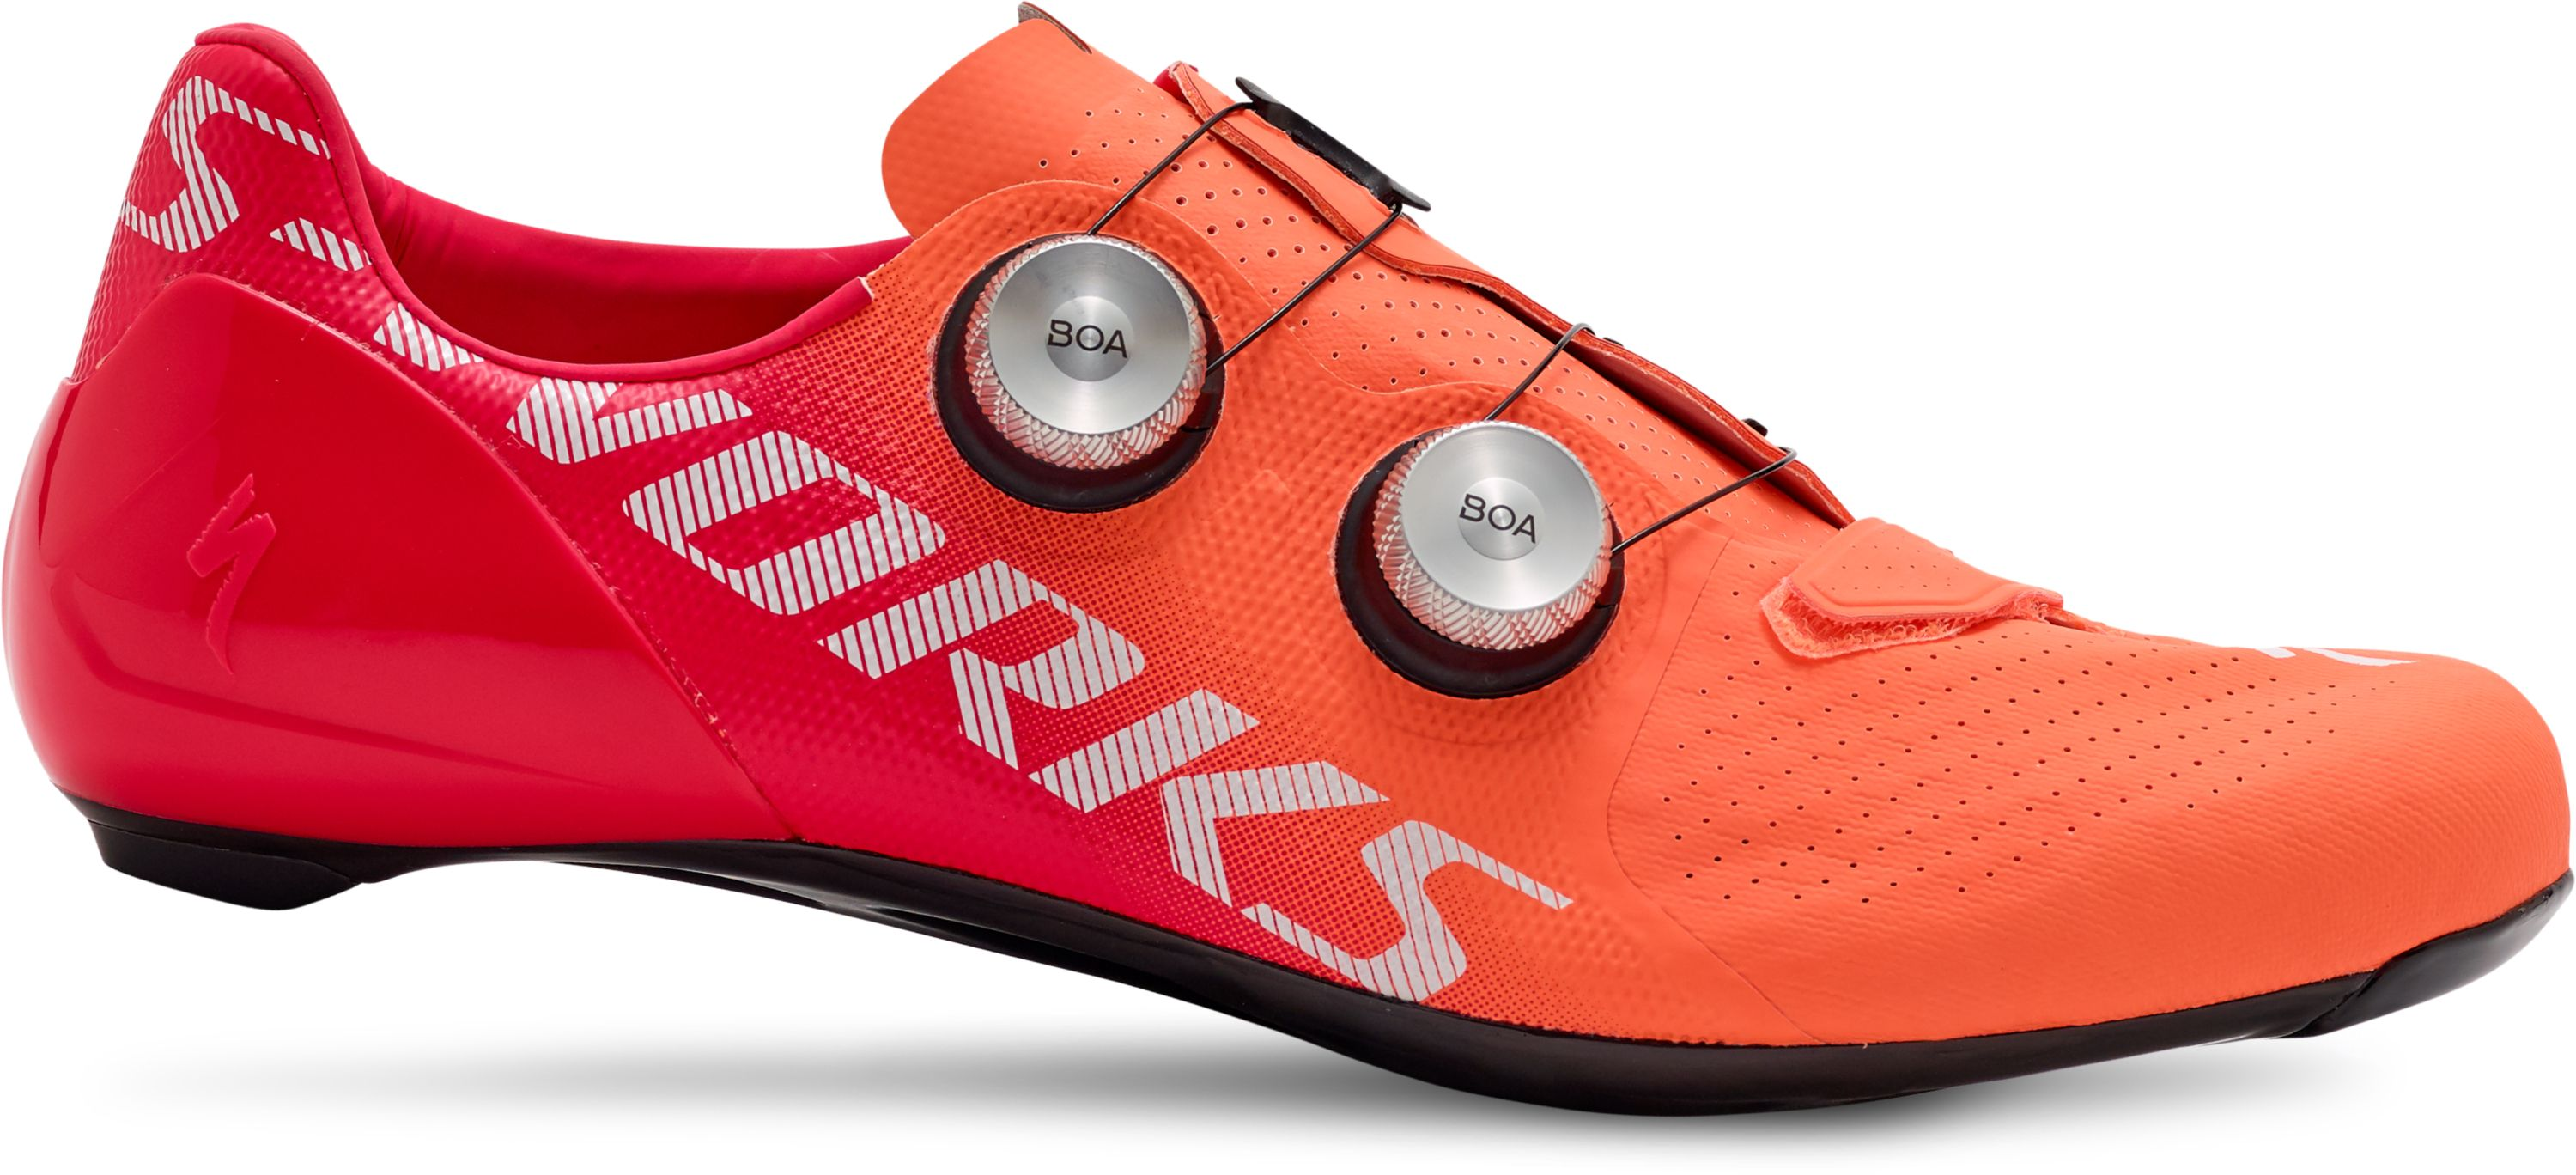 S Works 7 Road Shoes Down Under Ltd Mountain Bike Shoes Shoes